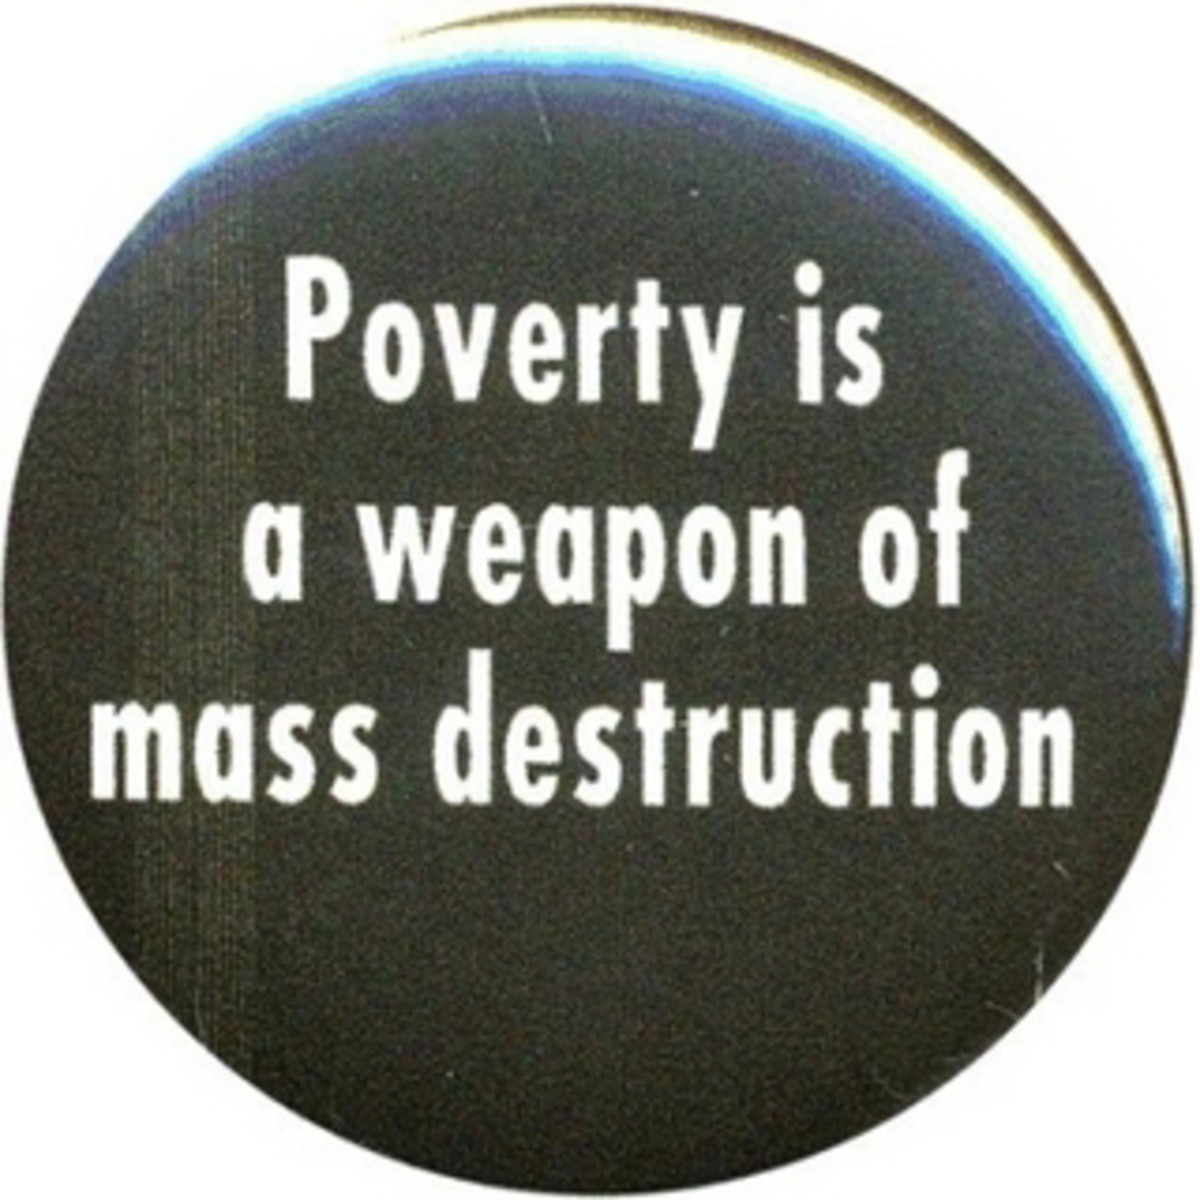 "This Aphorism is Spot On.. ""The capitalist society is violent by its very nature. The exploitation of workers, causing them to live on the edge of poverty, is a form of violence. To assume that wage slavery is not violent is patently false."" – Maoist"